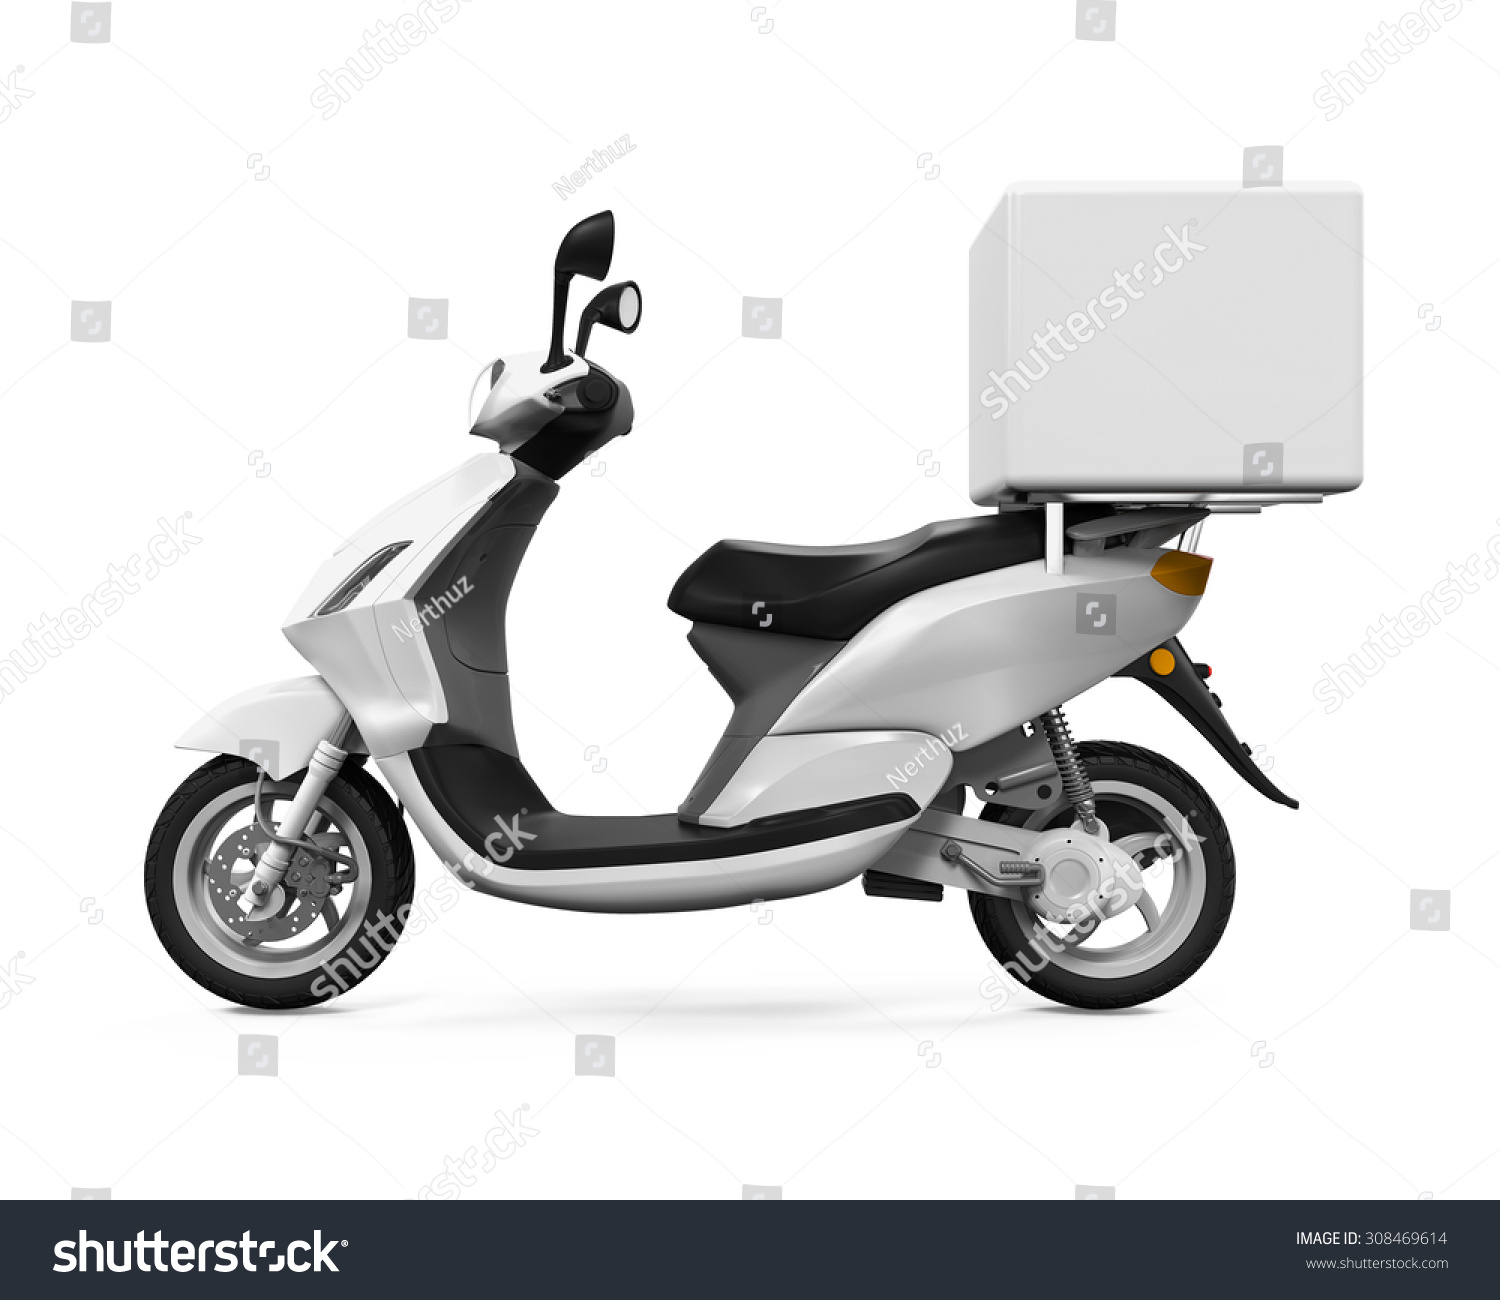 motorcycle delivery box stock illustration 308469614 shutterstock. Black Bedroom Furniture Sets. Home Design Ideas